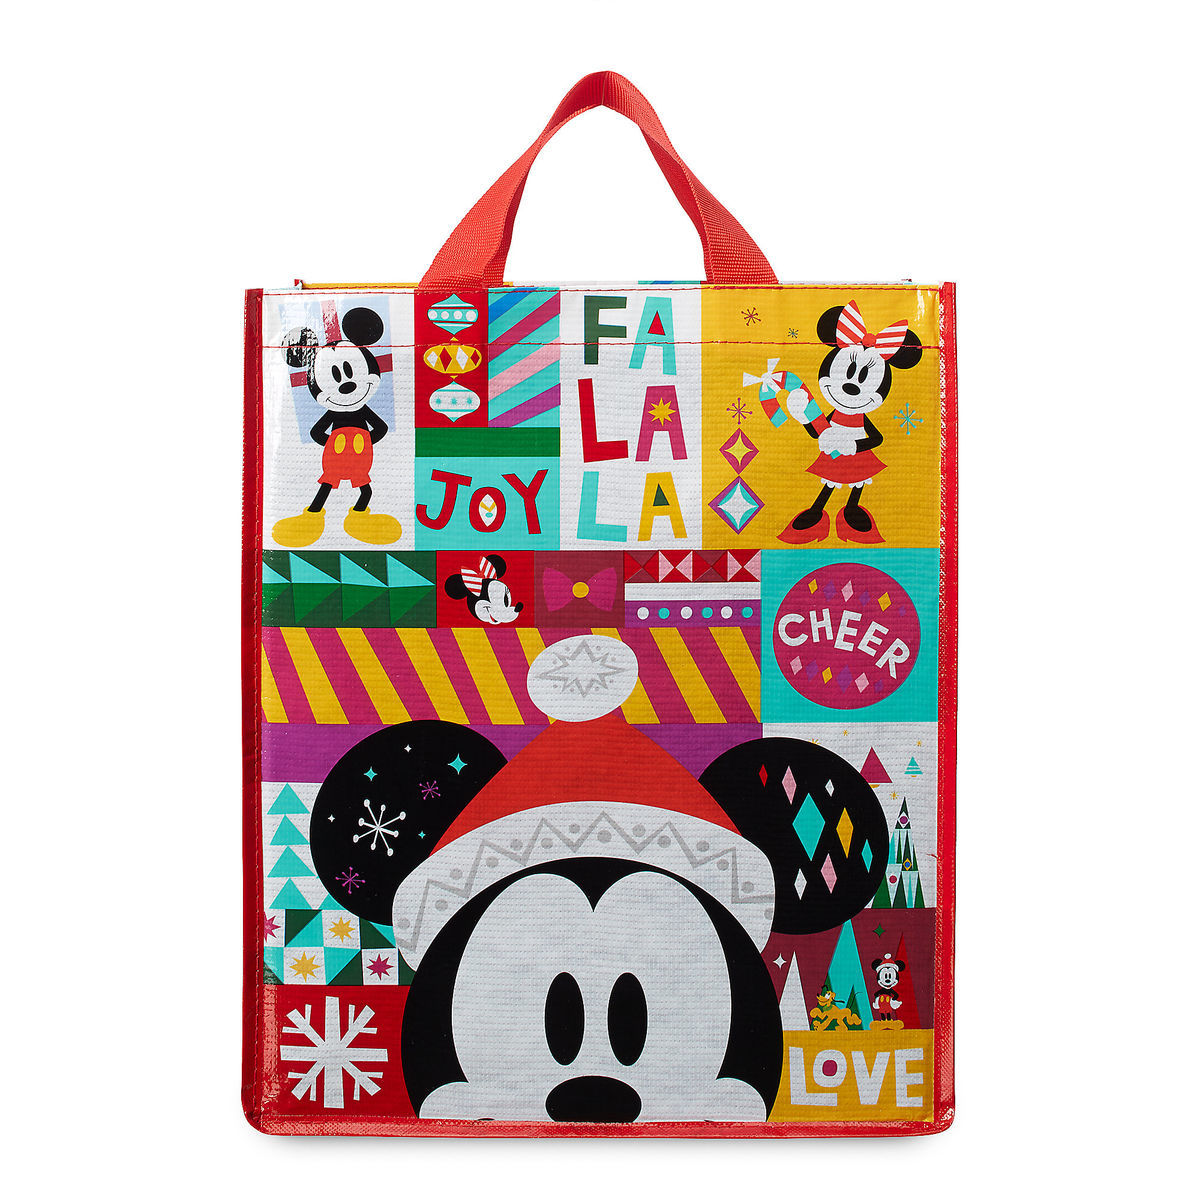 61b6dbefd59dc Product Image of Santa Mickey and Minnie Mouse Holiday Tote   1